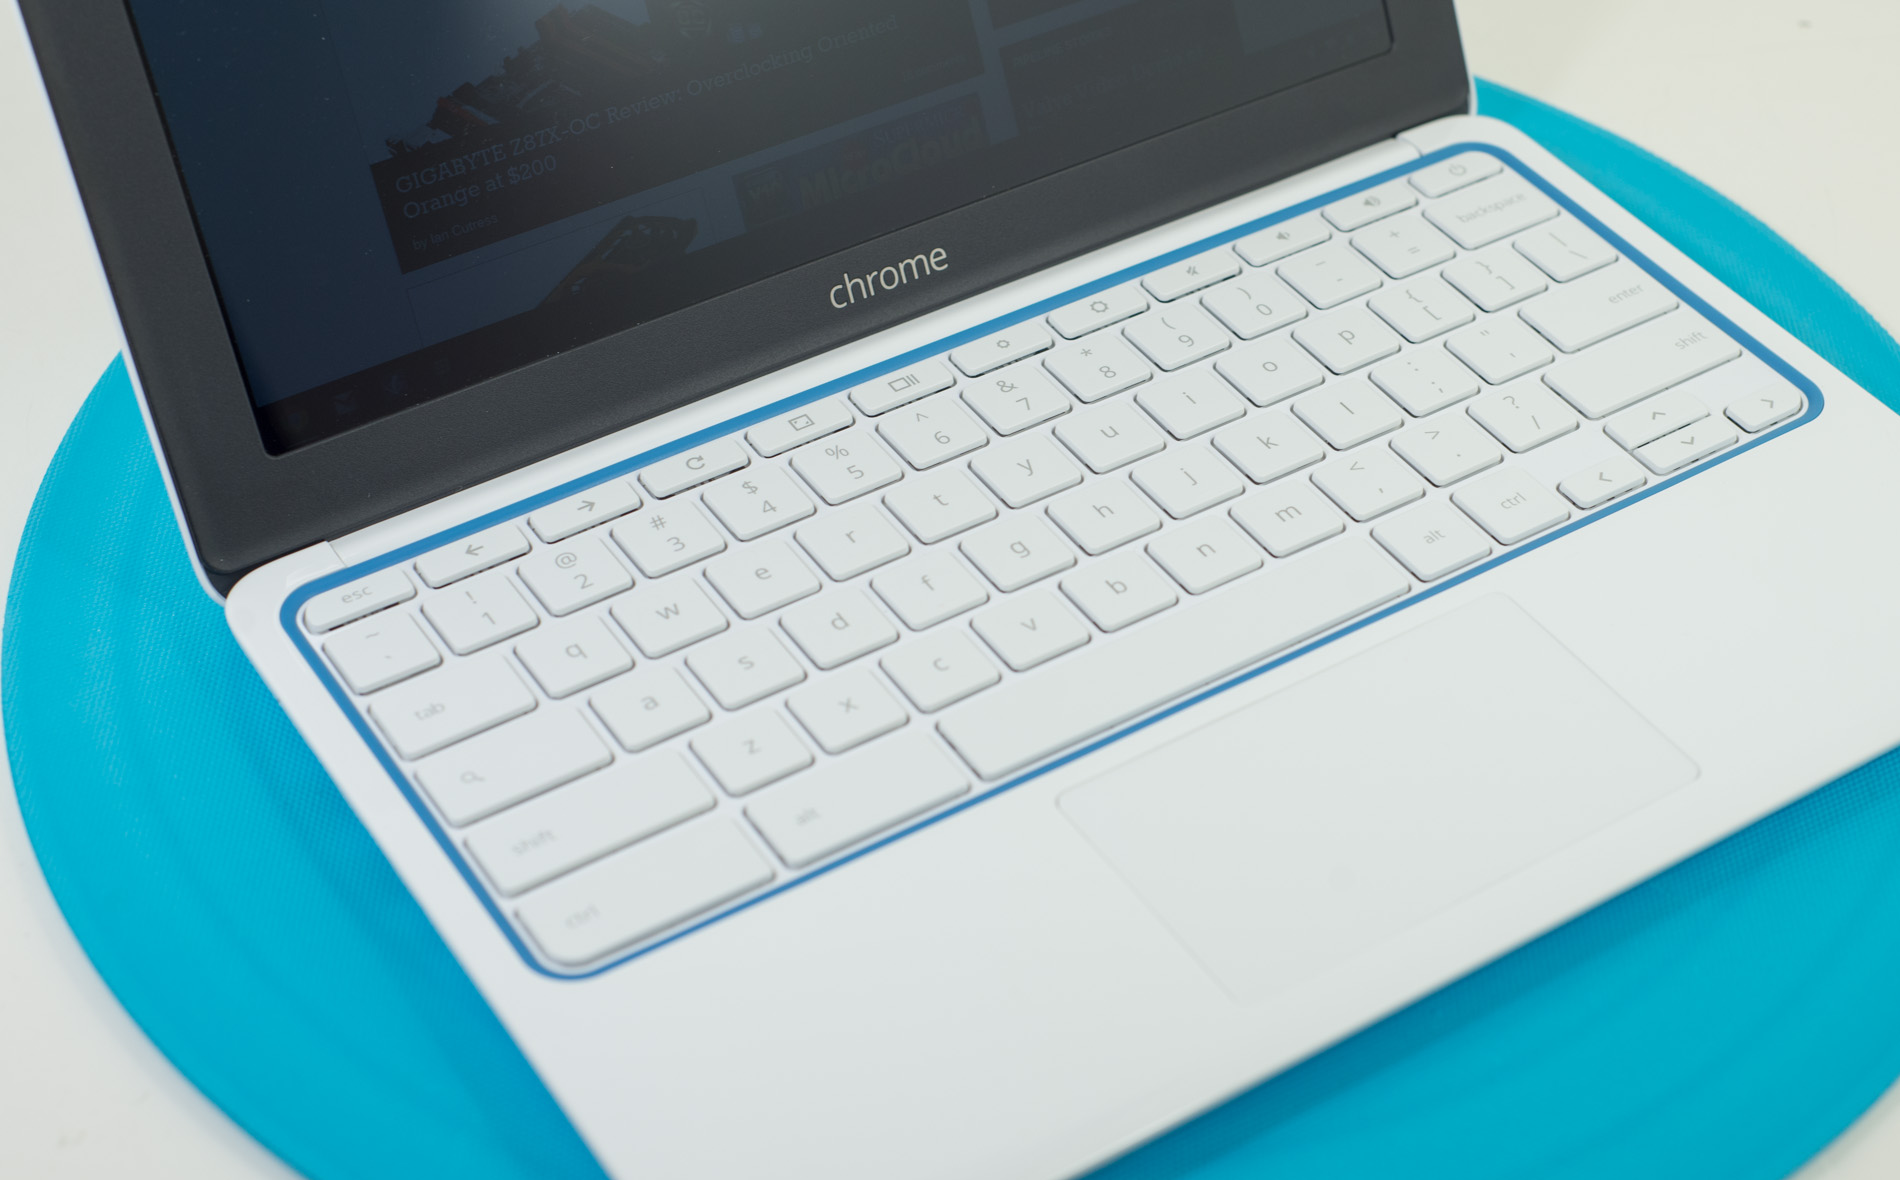 HP Chromebook 11 Review